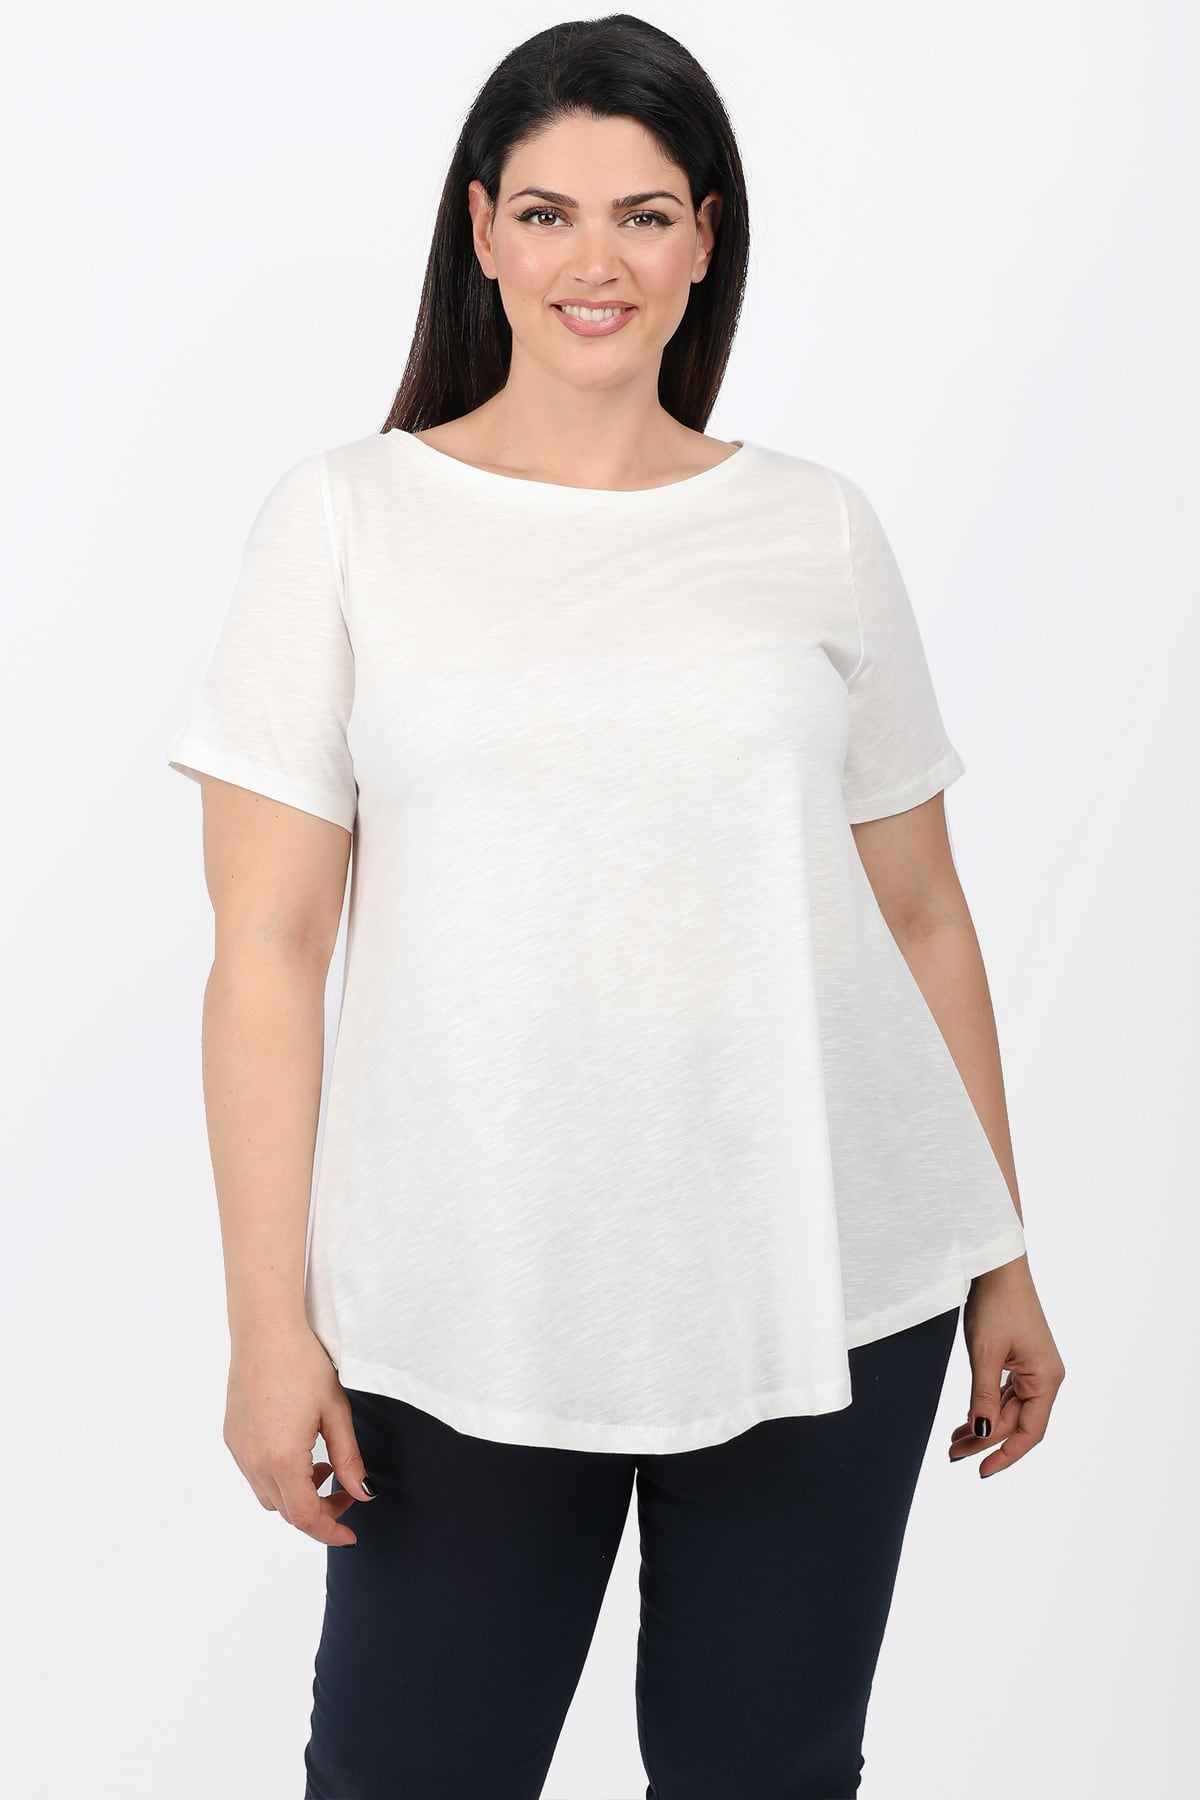 Basic A-line blouse